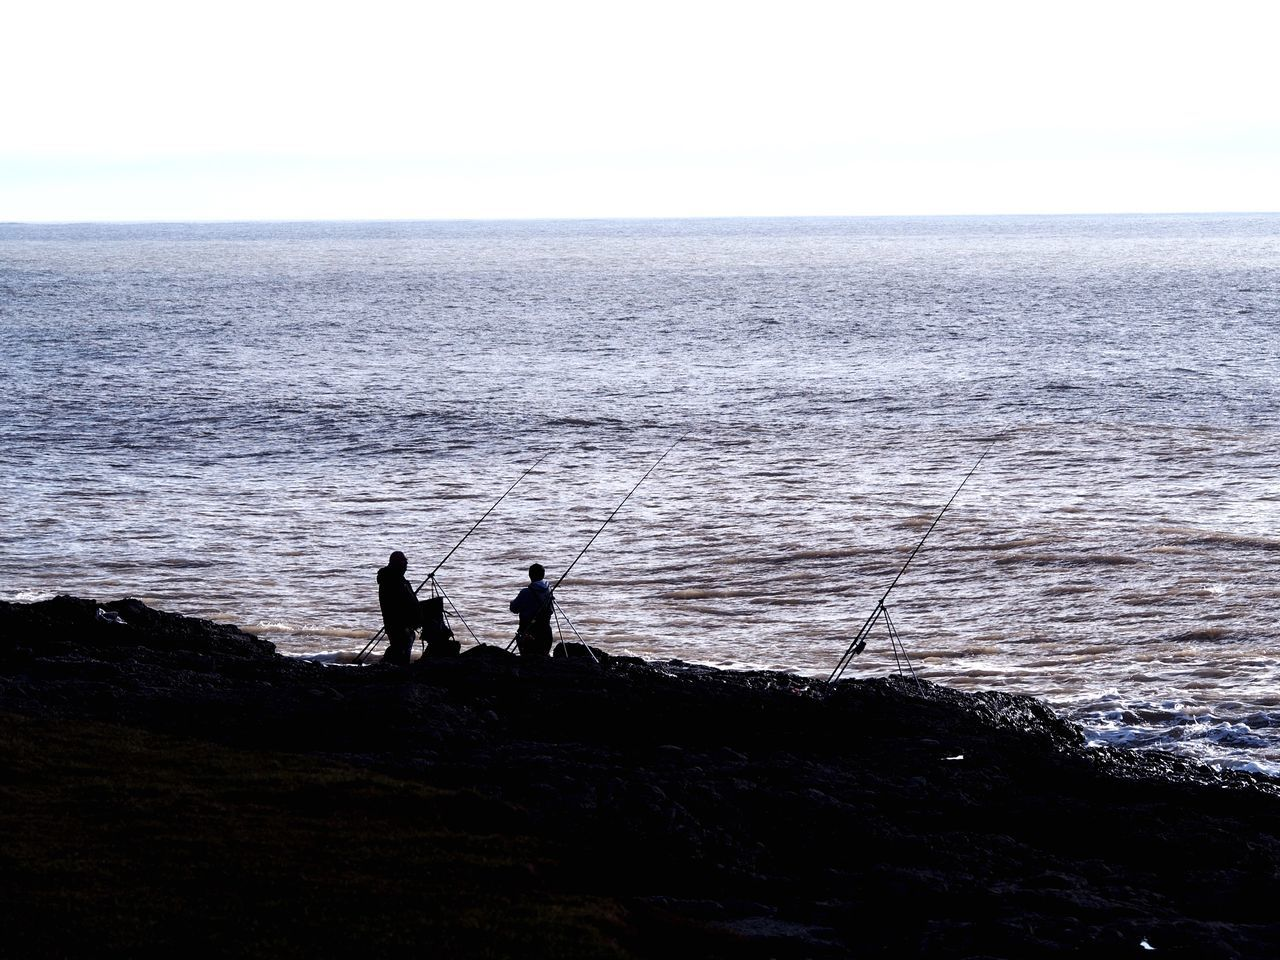 Fishing Wales Taking Pictures Beach People And Places